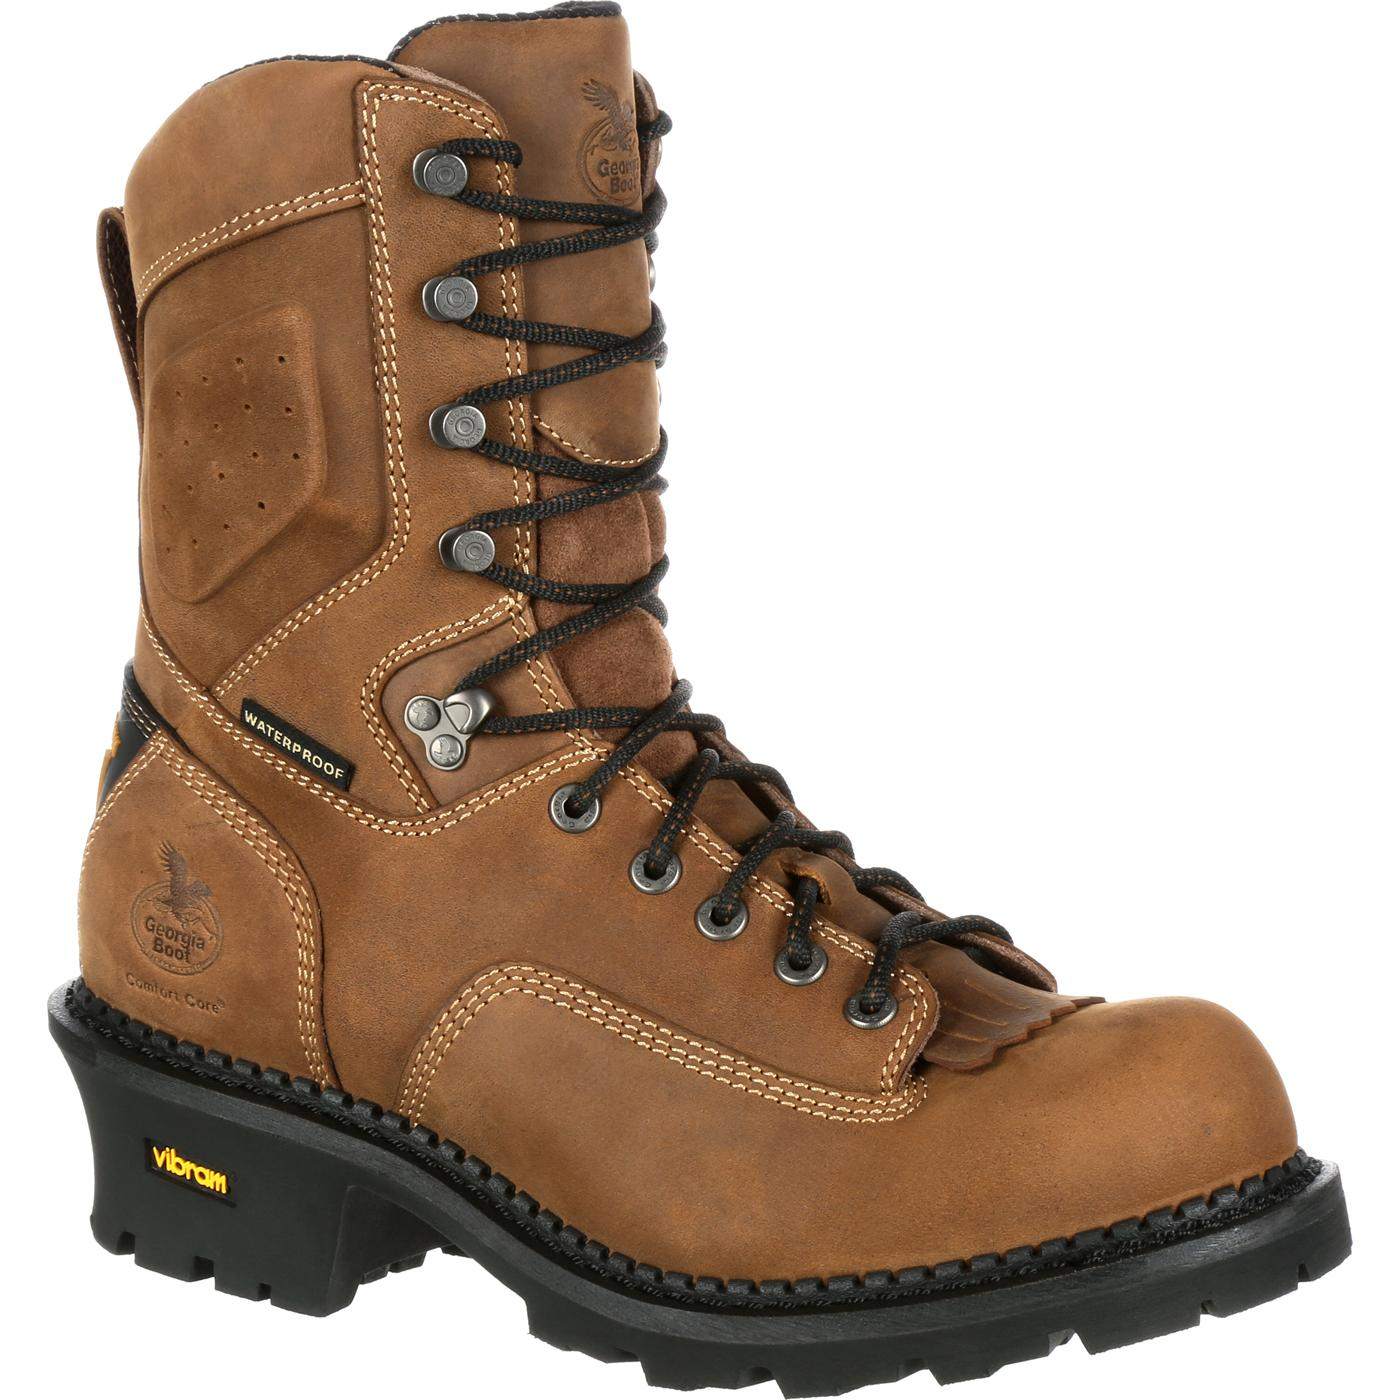 Georgia Boot Comfort Logger Safety Toe Waterproof Work Boot